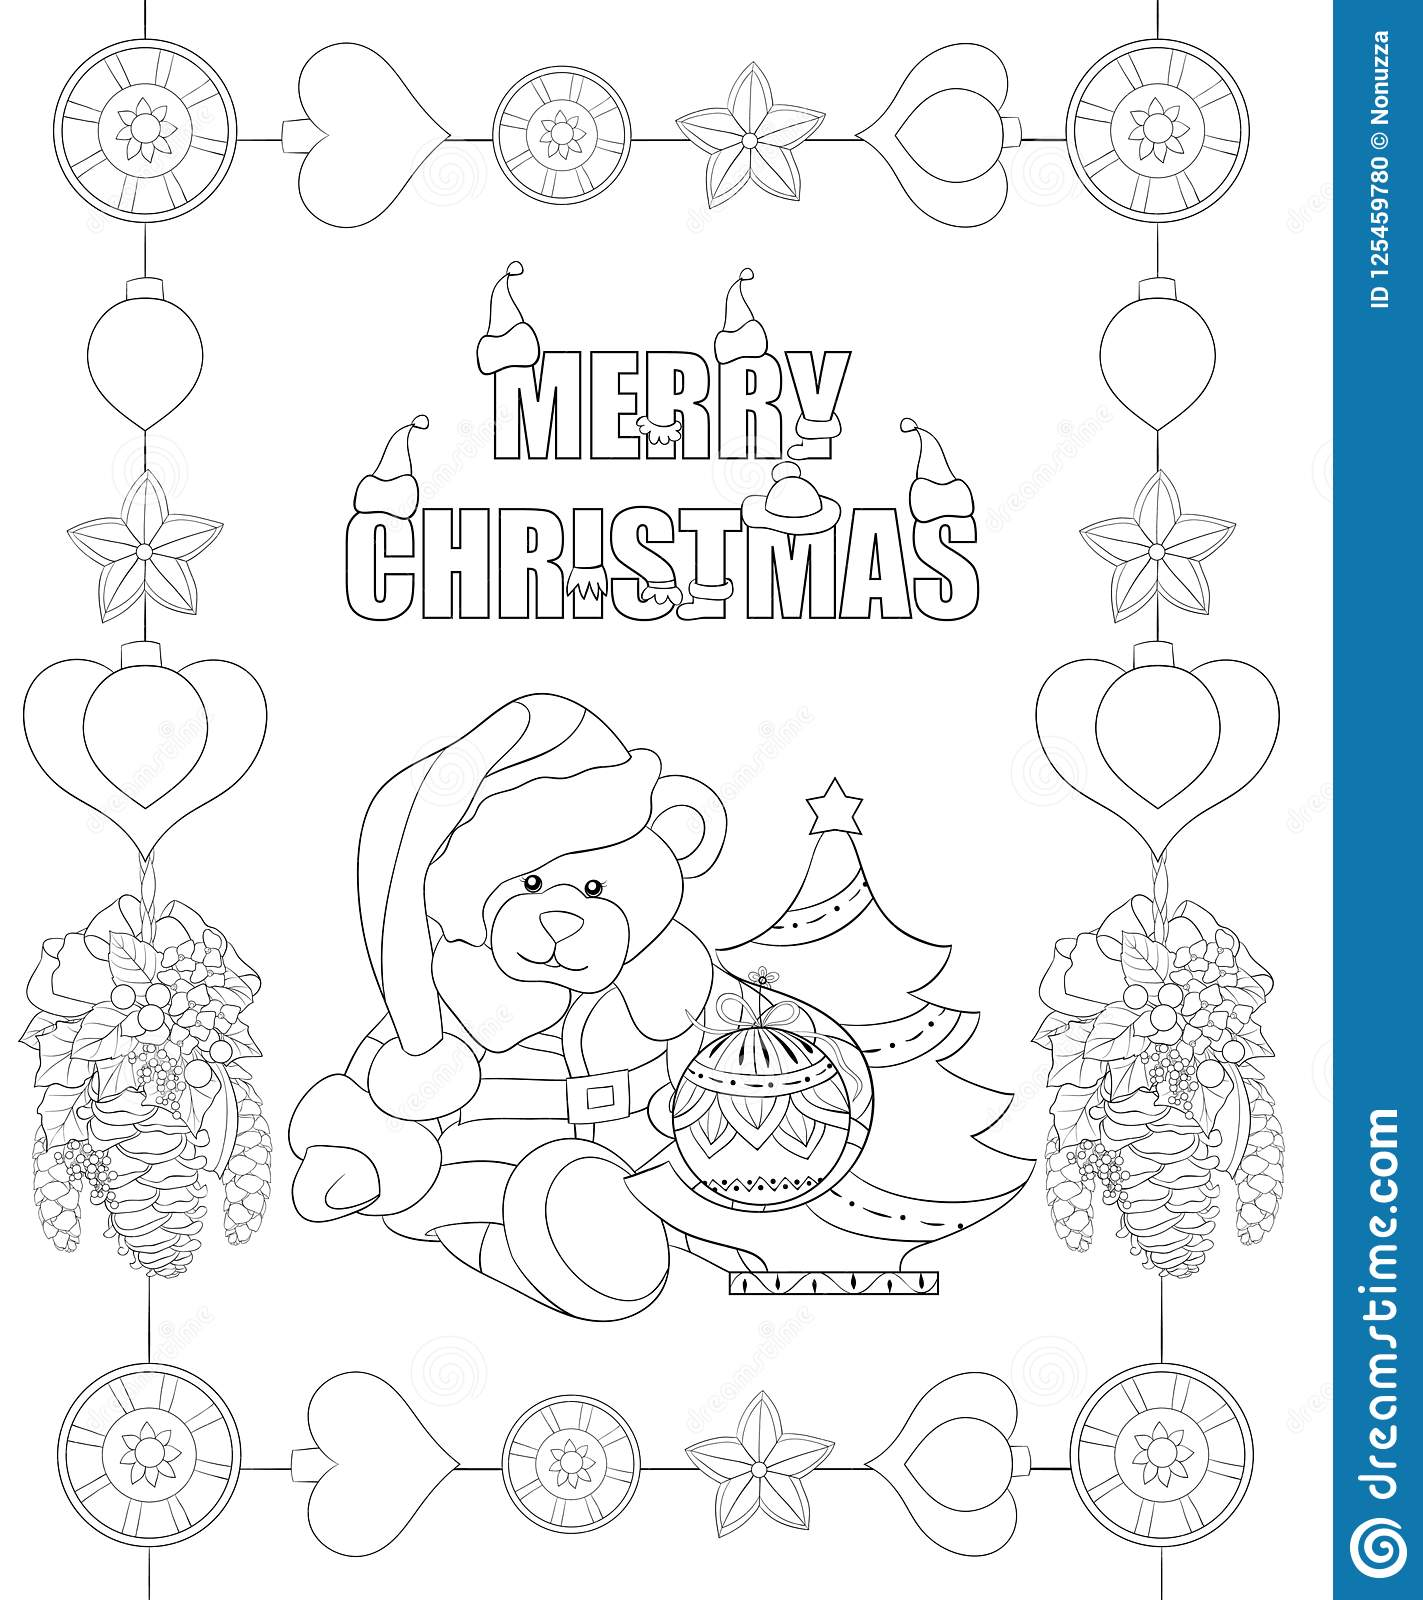 Christmas Tree Cones to Color | Christmas tree coloring page ... | 1600x1423